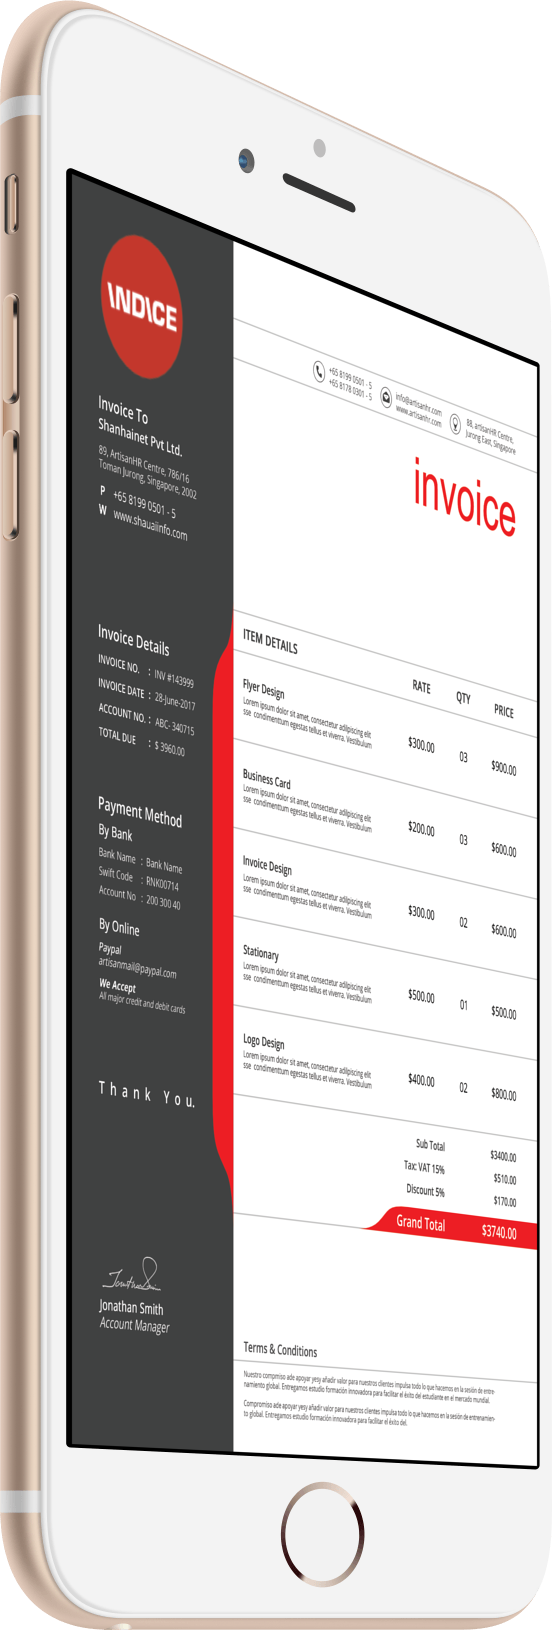 invoice-in-iphone